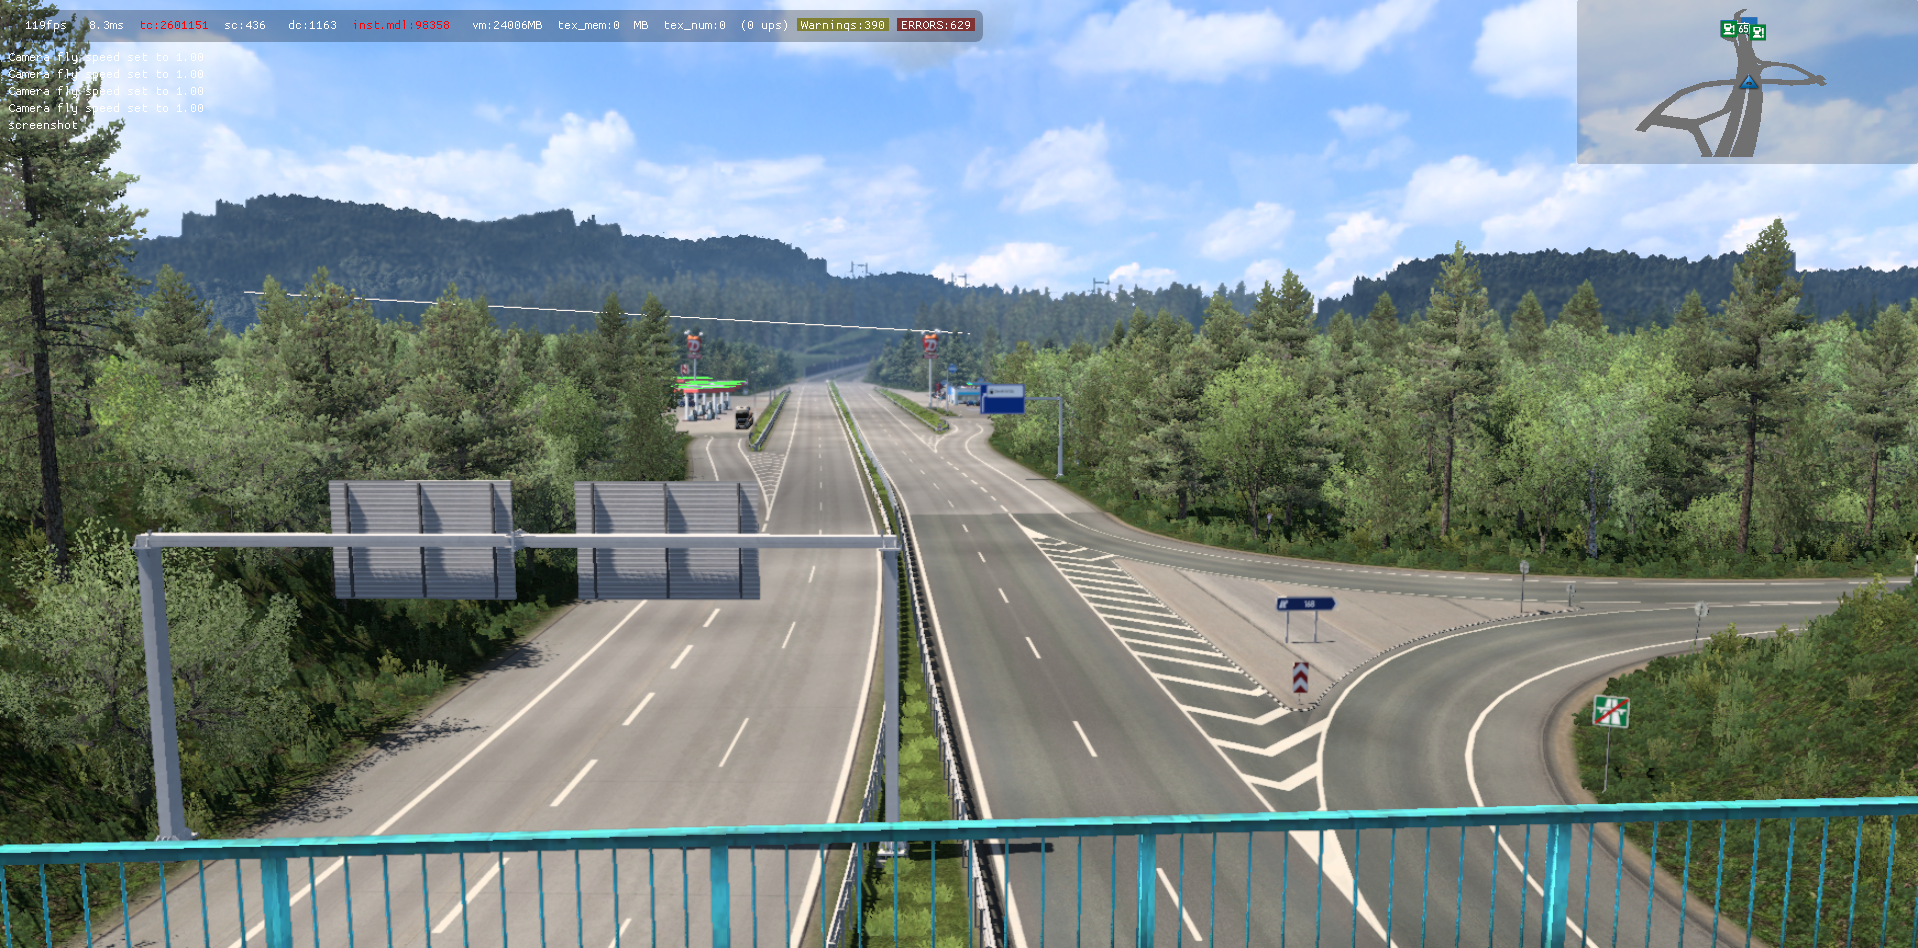 ets2_20210729_235852_00.png